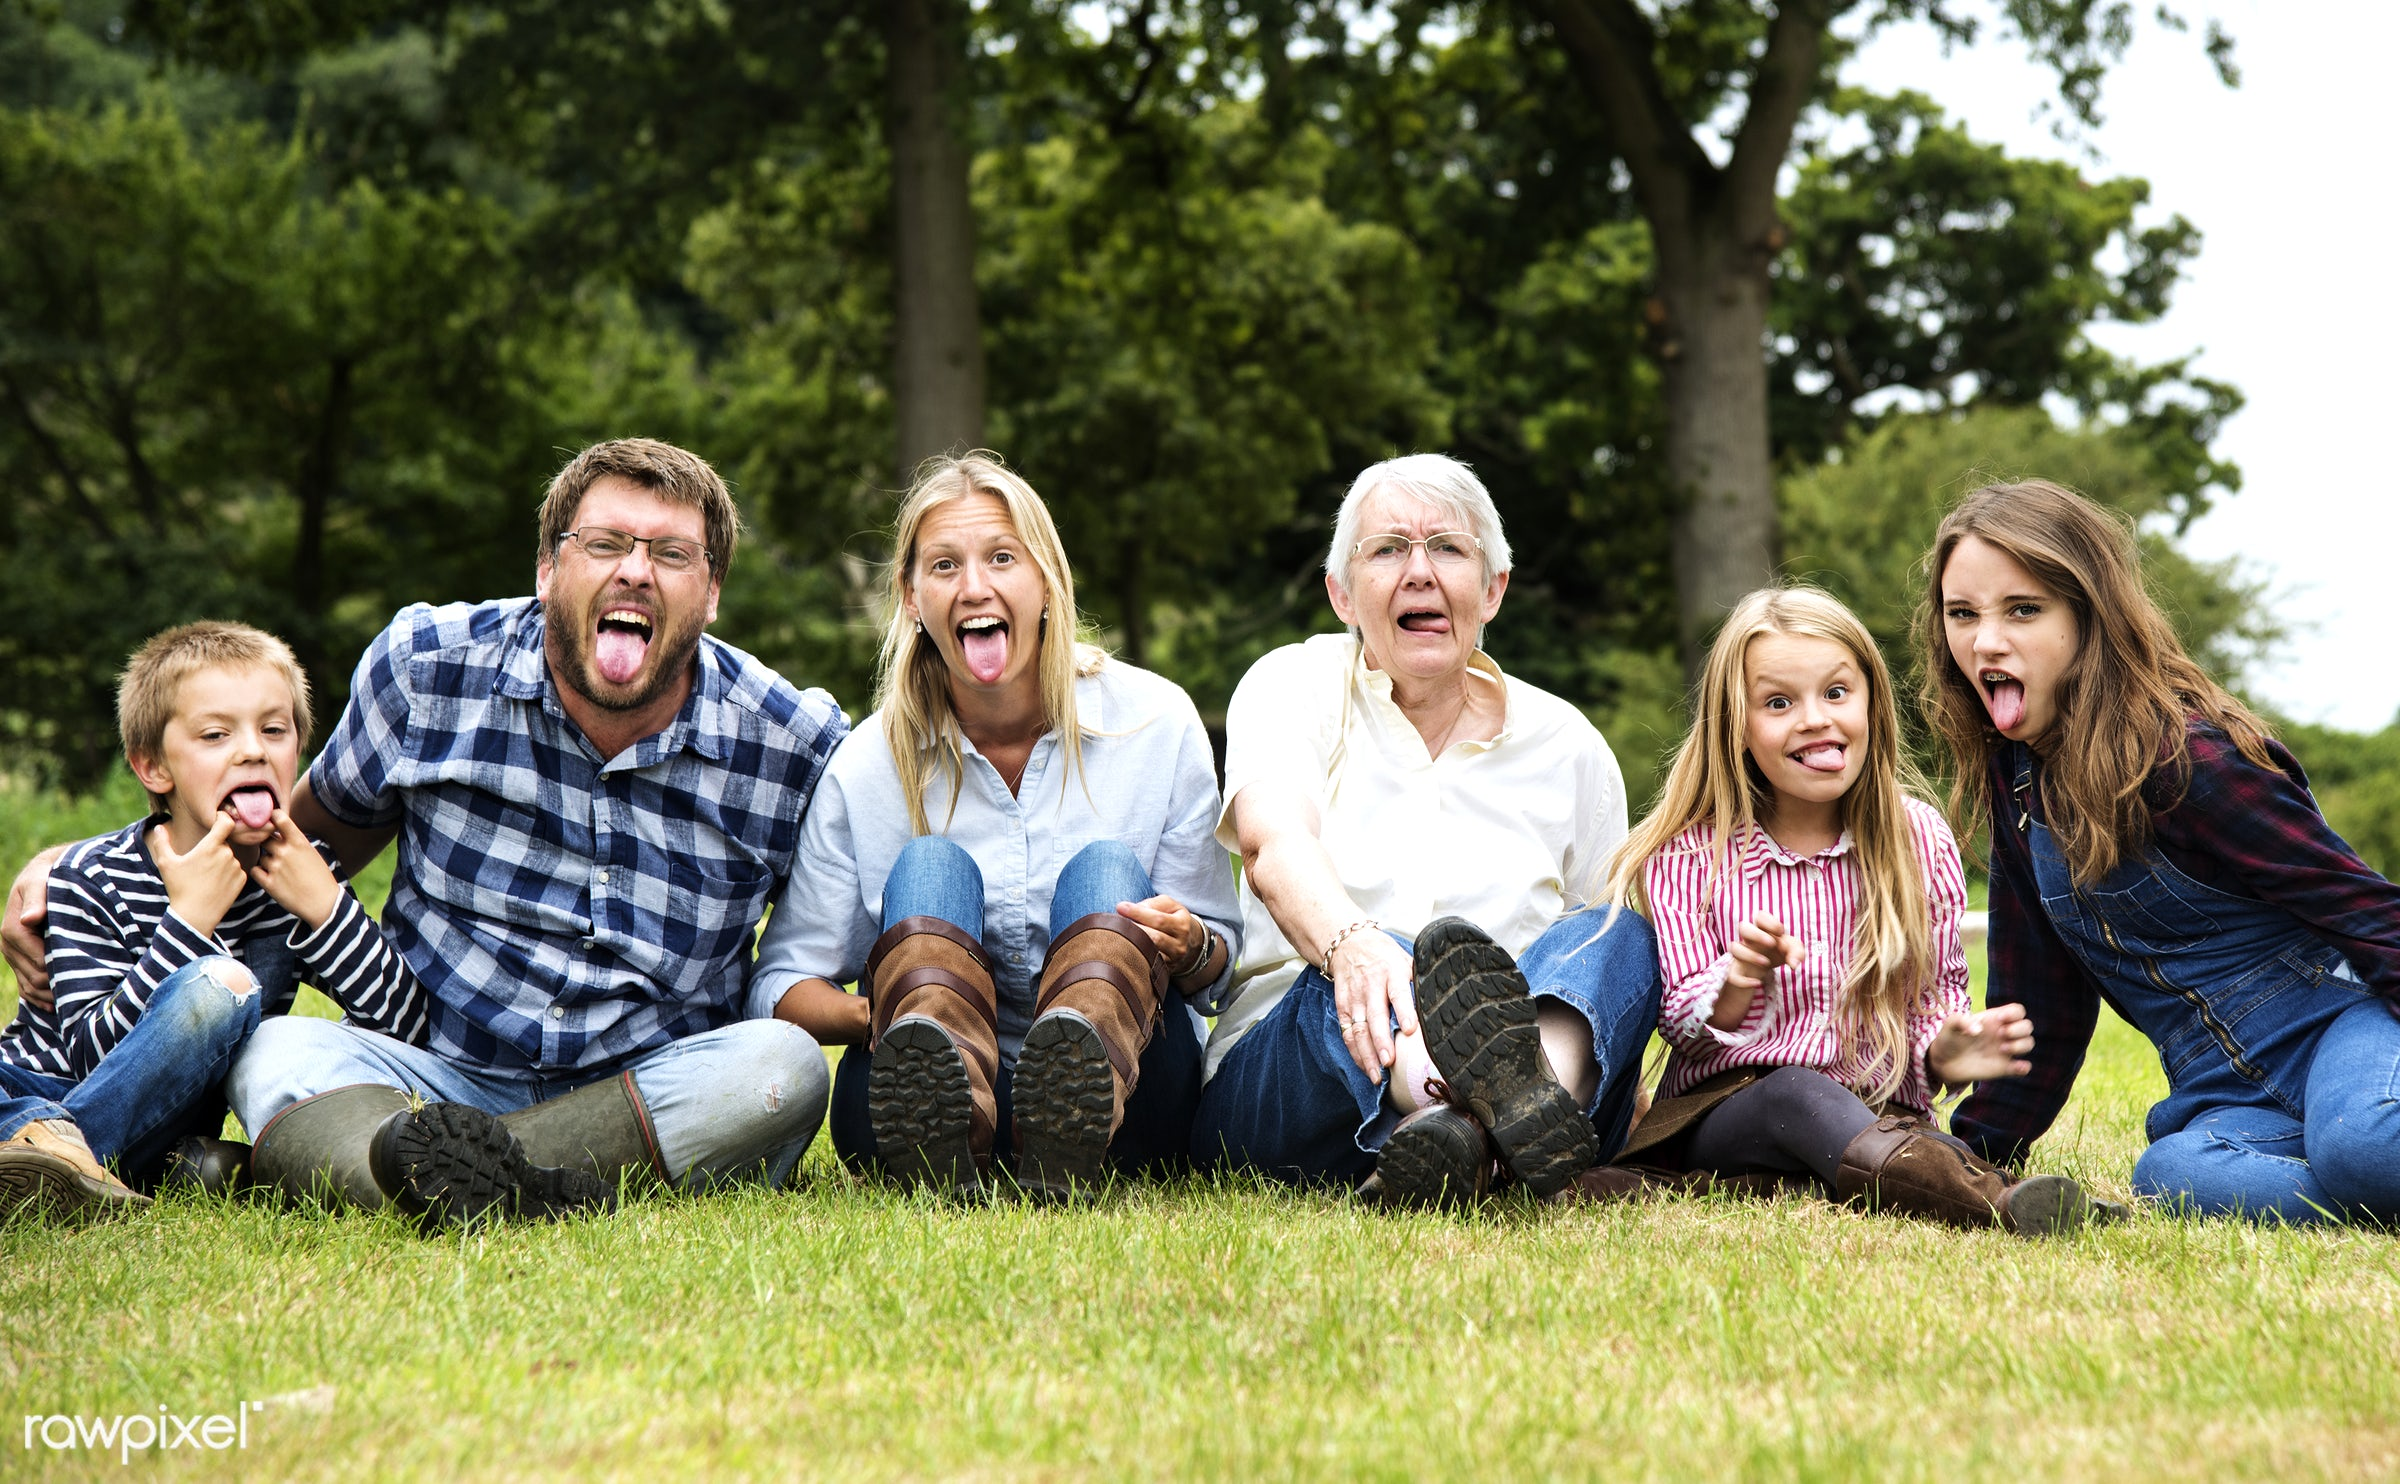 Happy family  - bonding, cheerful, children, enjoyment, family, father, field, fun, garden, generations, grass, happiness,...